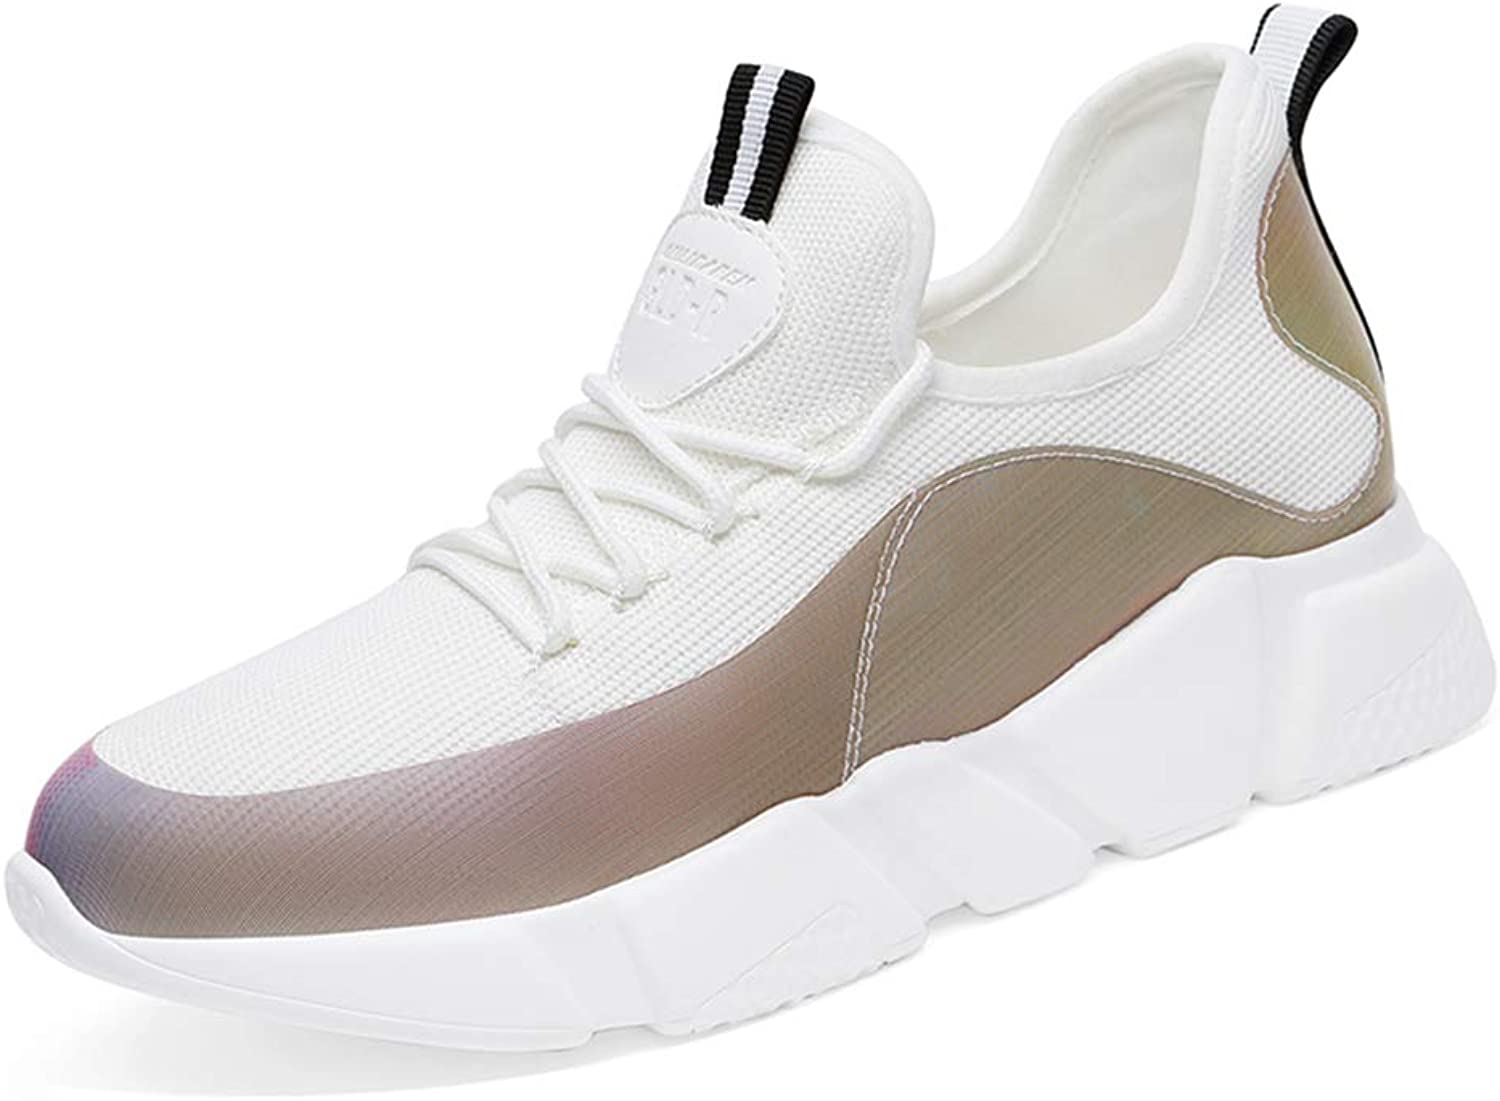 Zarbrina Women's Walking Sneakers Patchwork Low Top Lace up Round Toe Comfort Soft Foam Sole Casual shoes